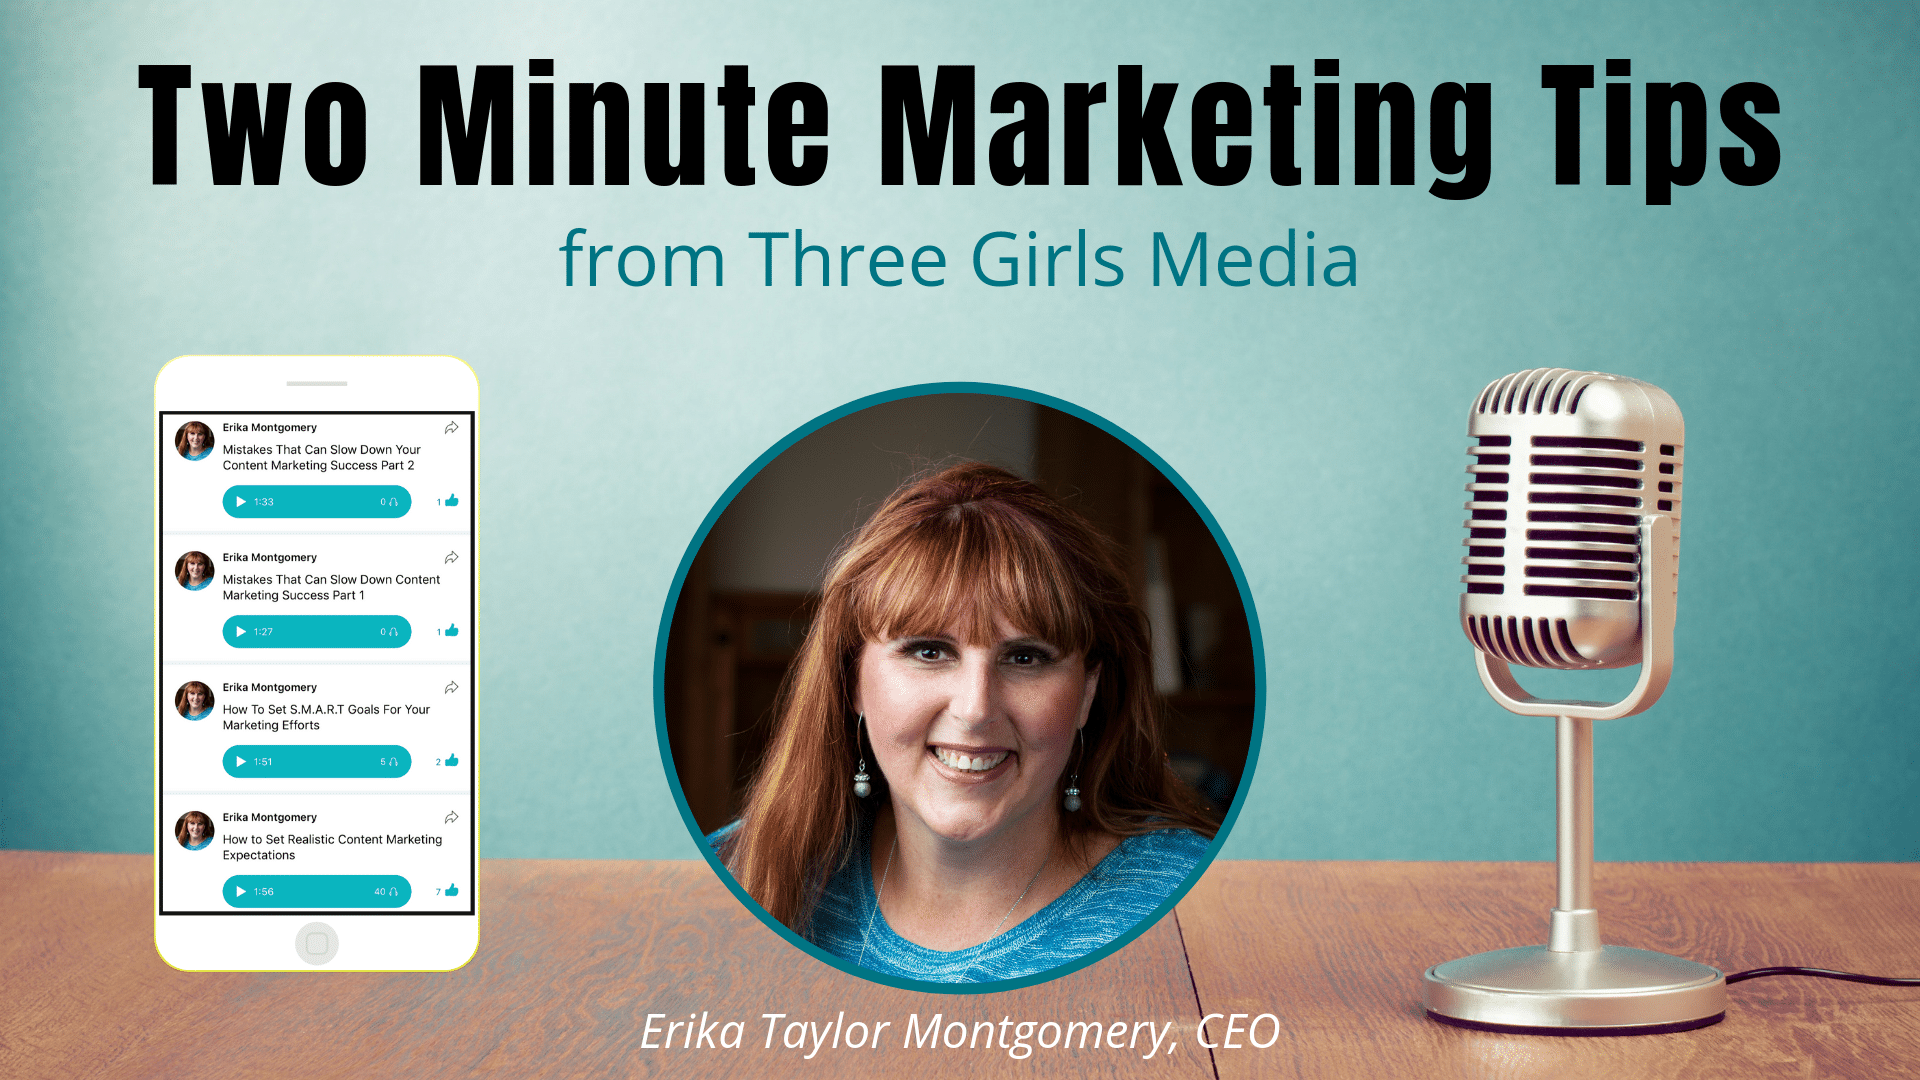 Two Minute Marketing Tips: The Ins and Outs of Social Media Advertising